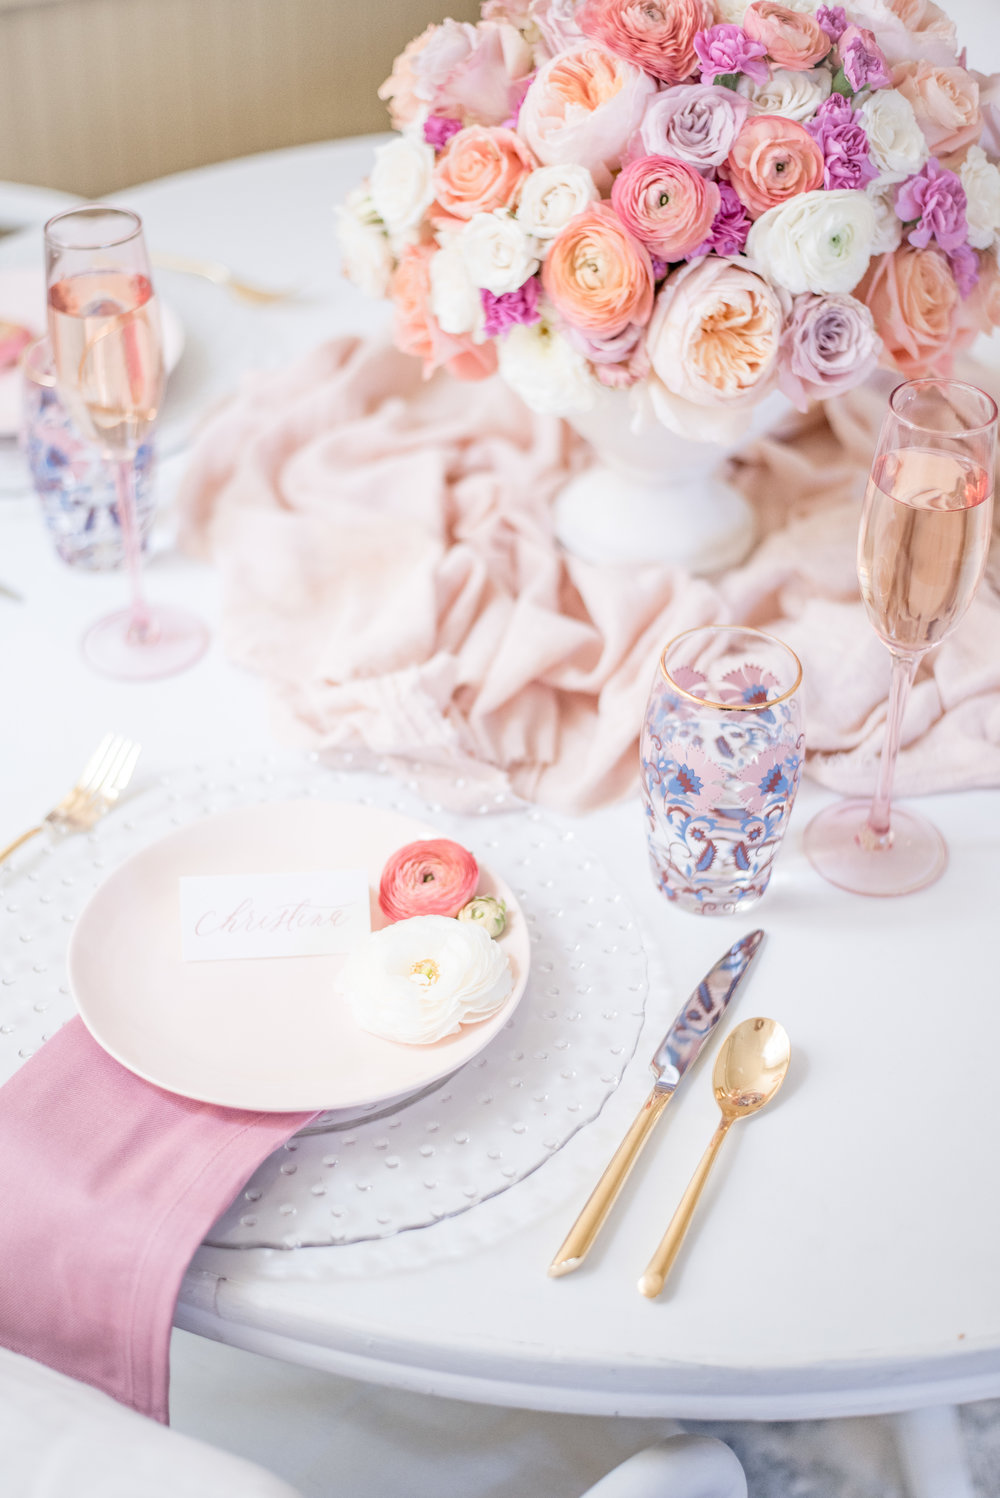 Gold flatware and festive patterned water glasses pair so well with pale pink plates and napkins!